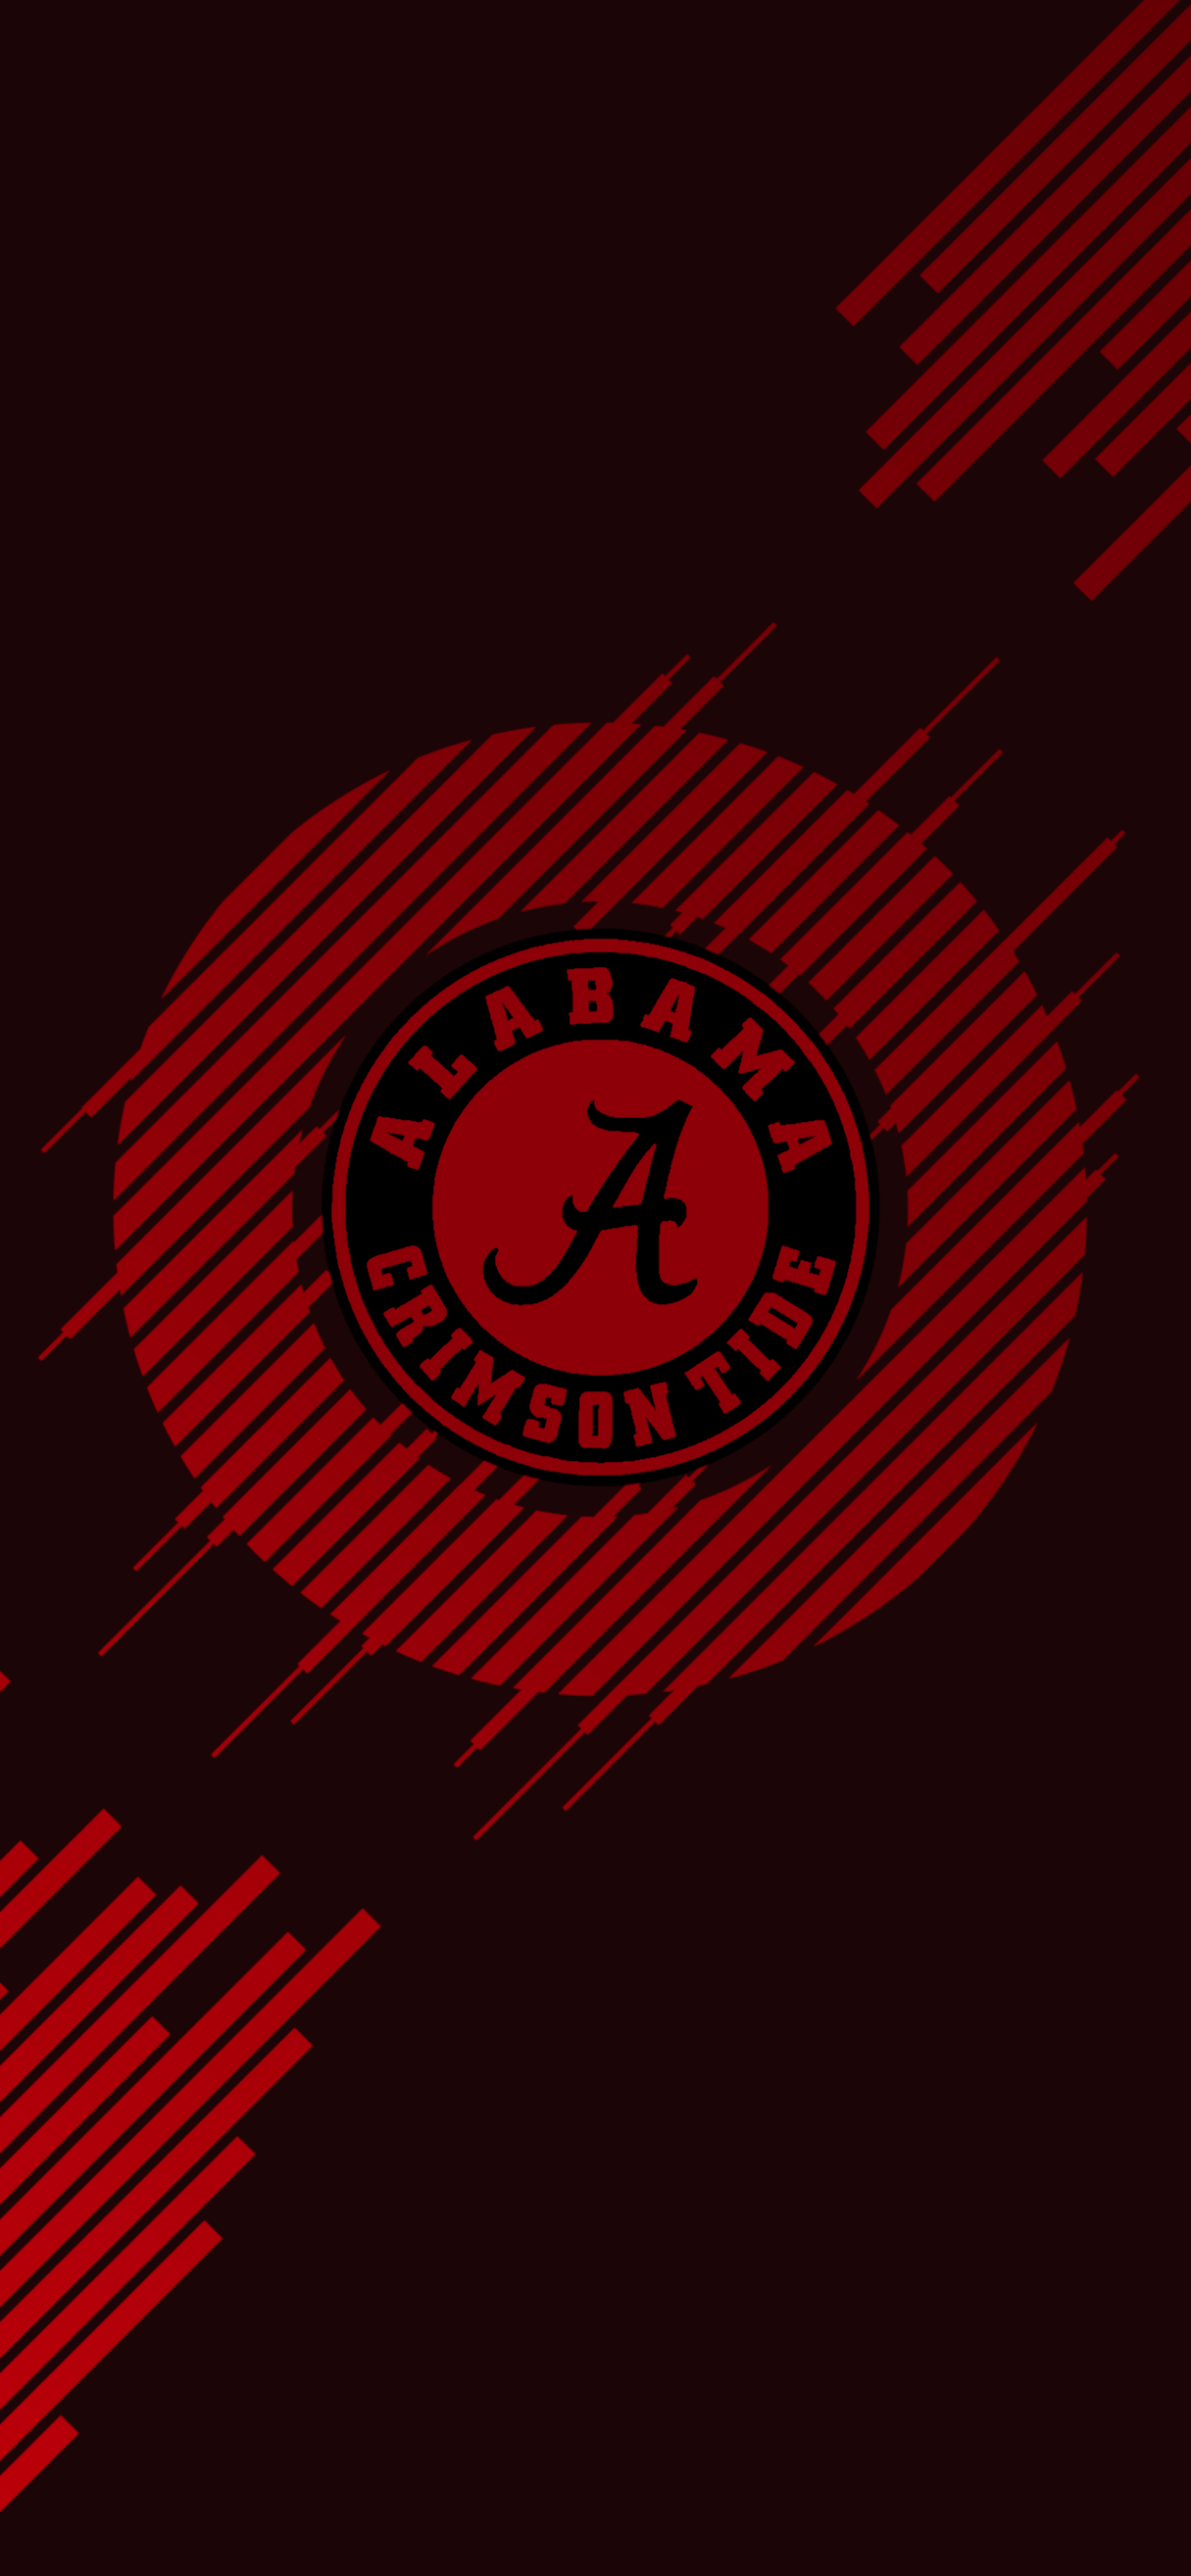 Pin By Nick Pope On High Resolution Alabama Football Wallpapers Hd Iphone Alabama Crimson Tide Football Wallpaper Alabama Football Roll Tide Crimson Tide Football